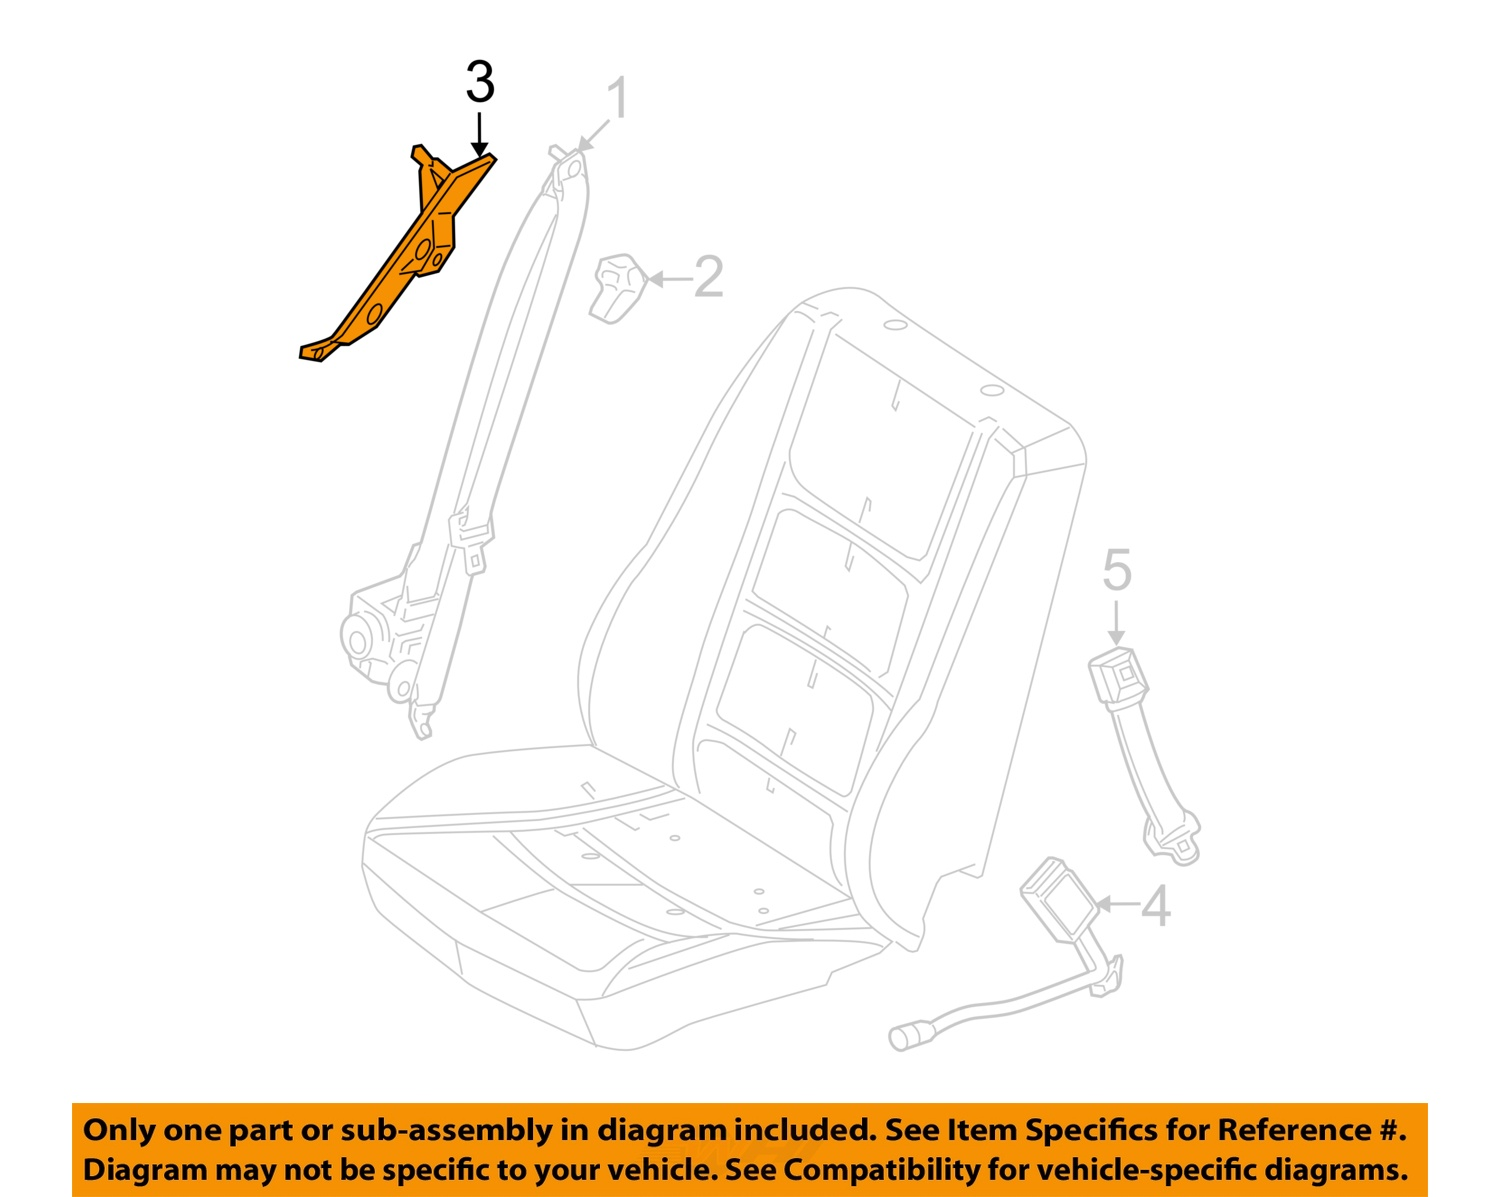 Ford Fusion: Seat belt height adjustment